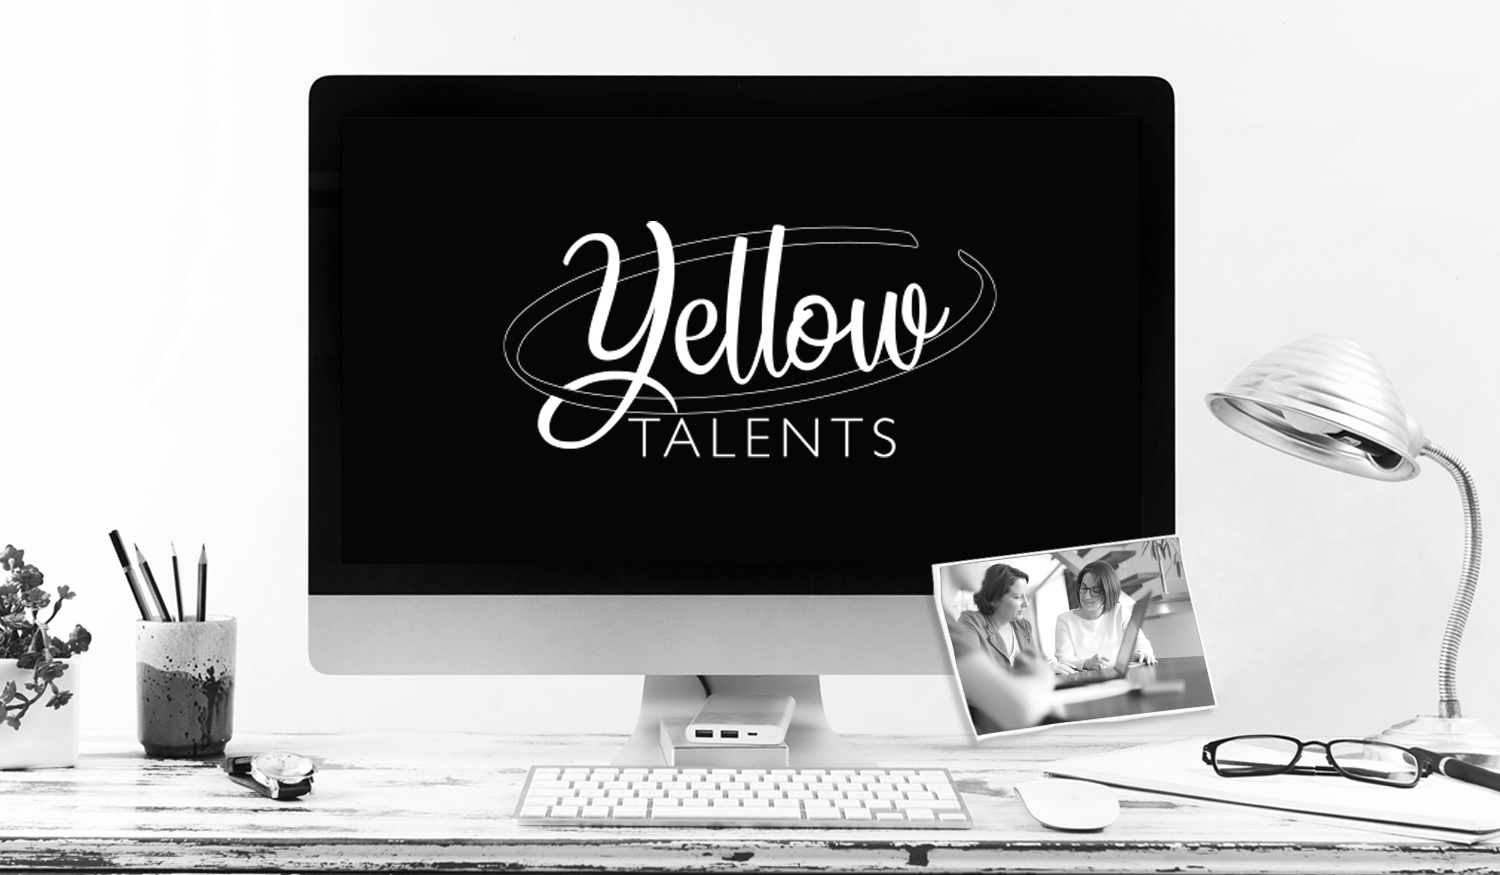 Yellow-talents-logo